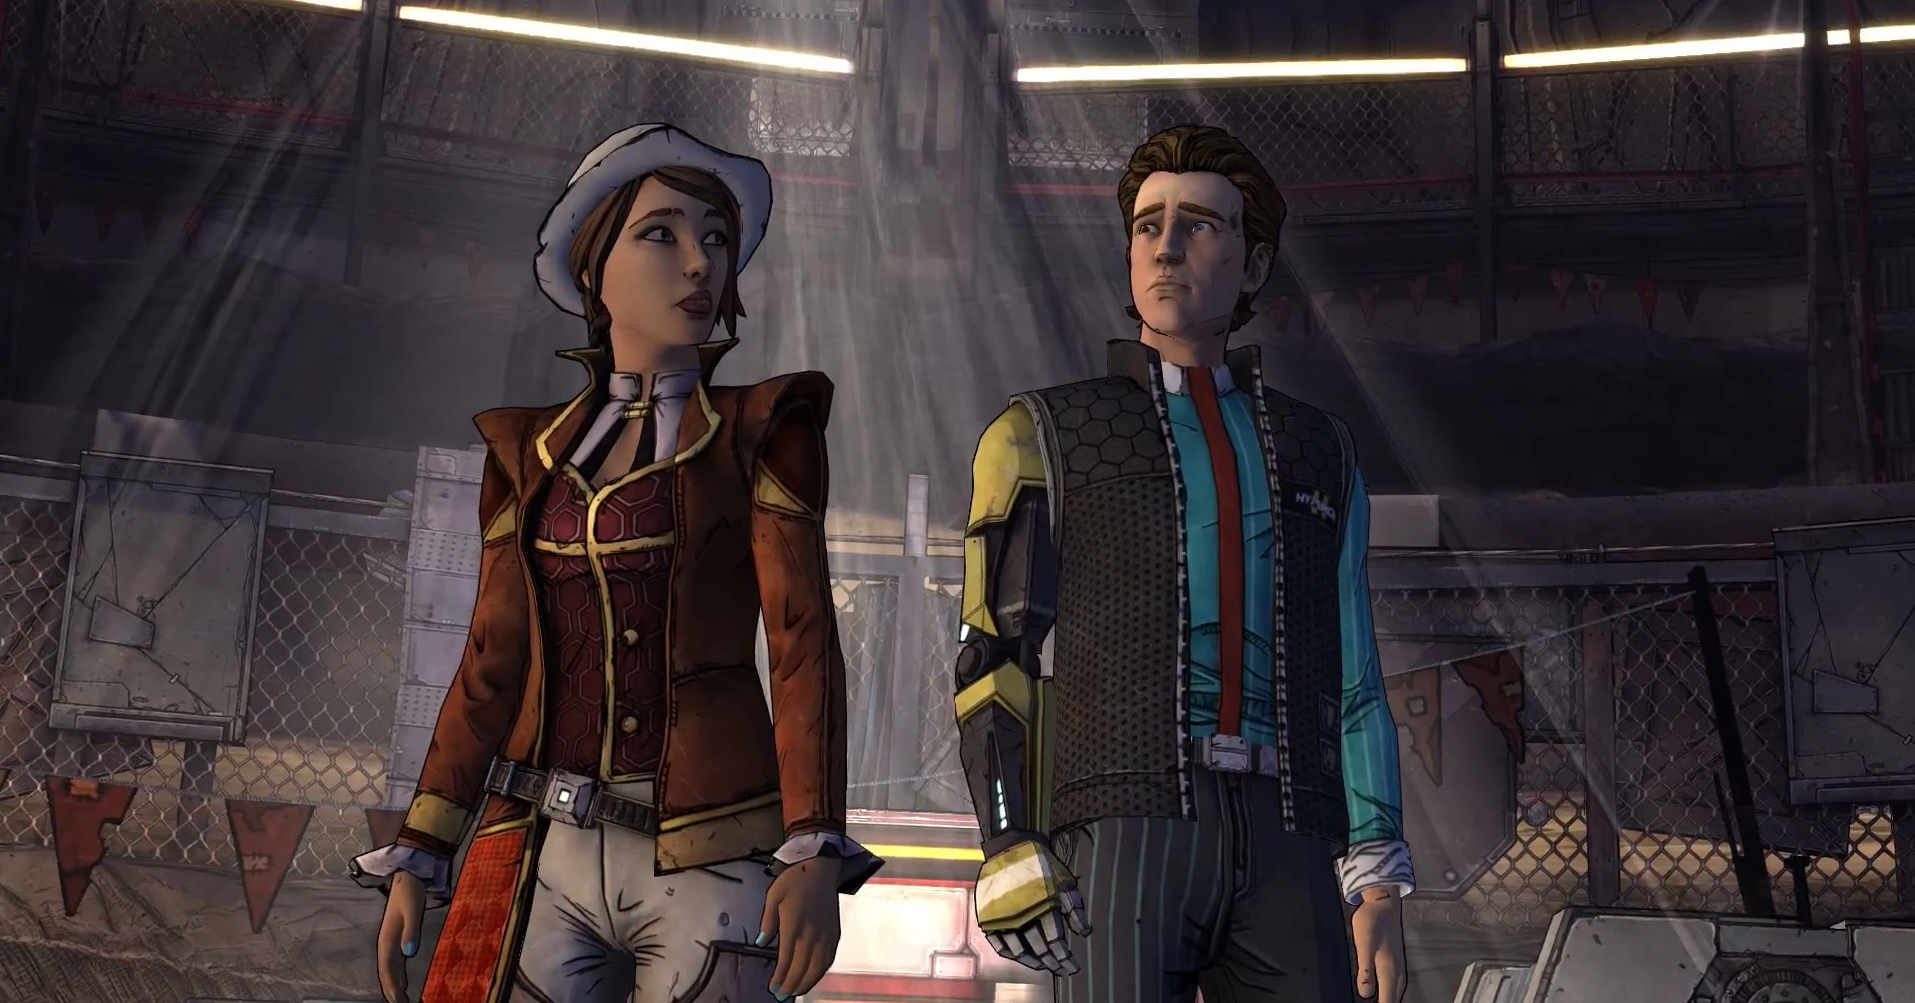 BlurryPhoenix Reflects: Tales from the Borderlands